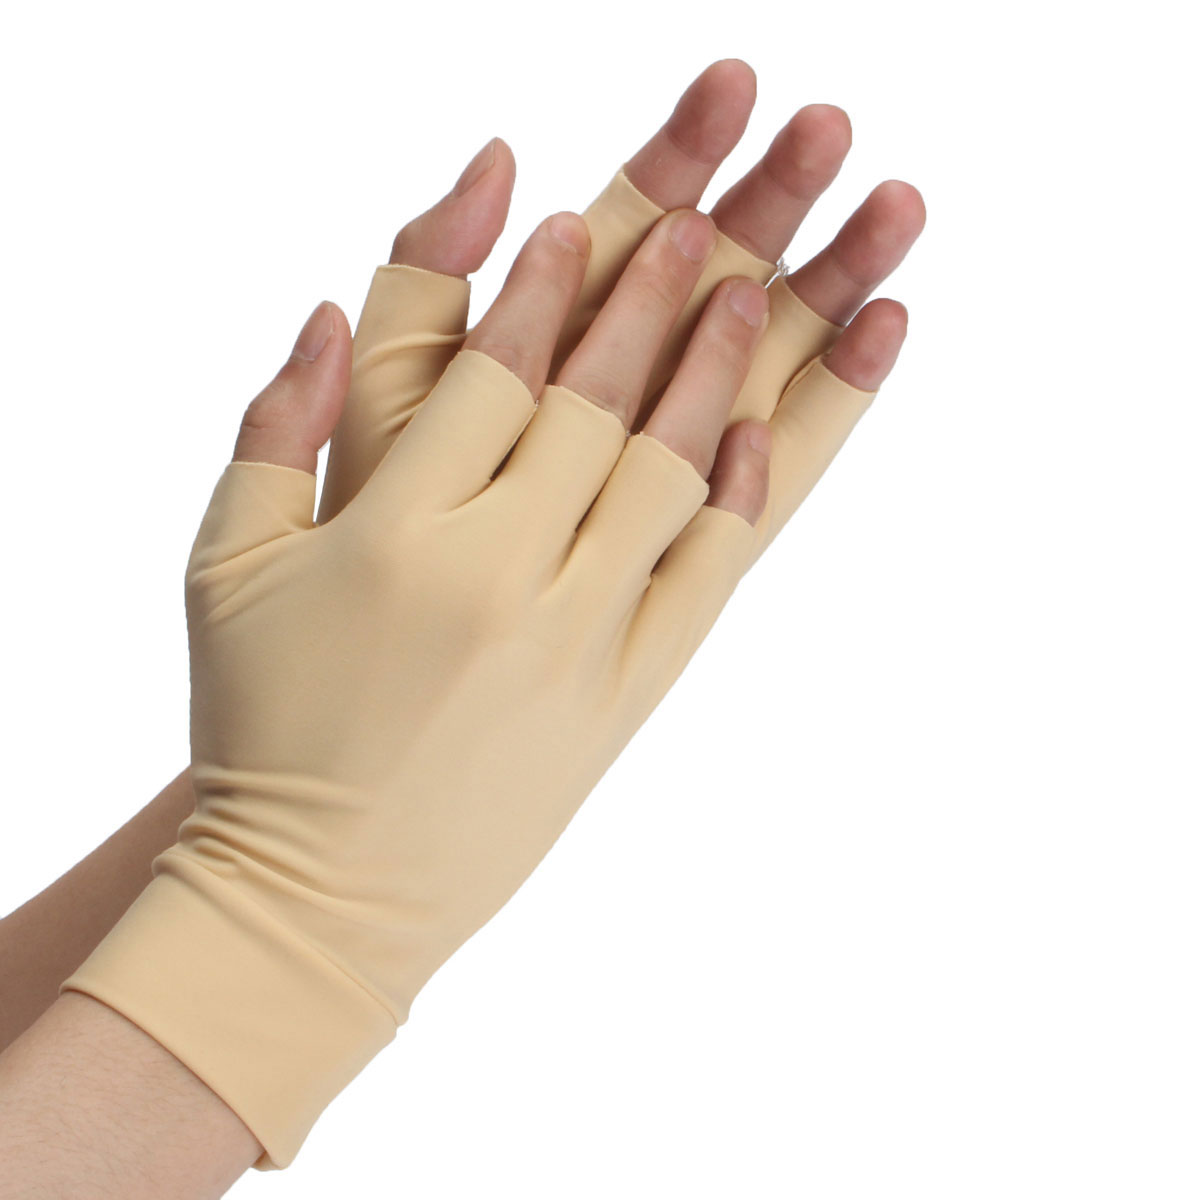 Hand physical therapy equipment - Anti Arthritis Inflammation Swelling Pain Relief Gloves Physical Therapy For Aching Hand